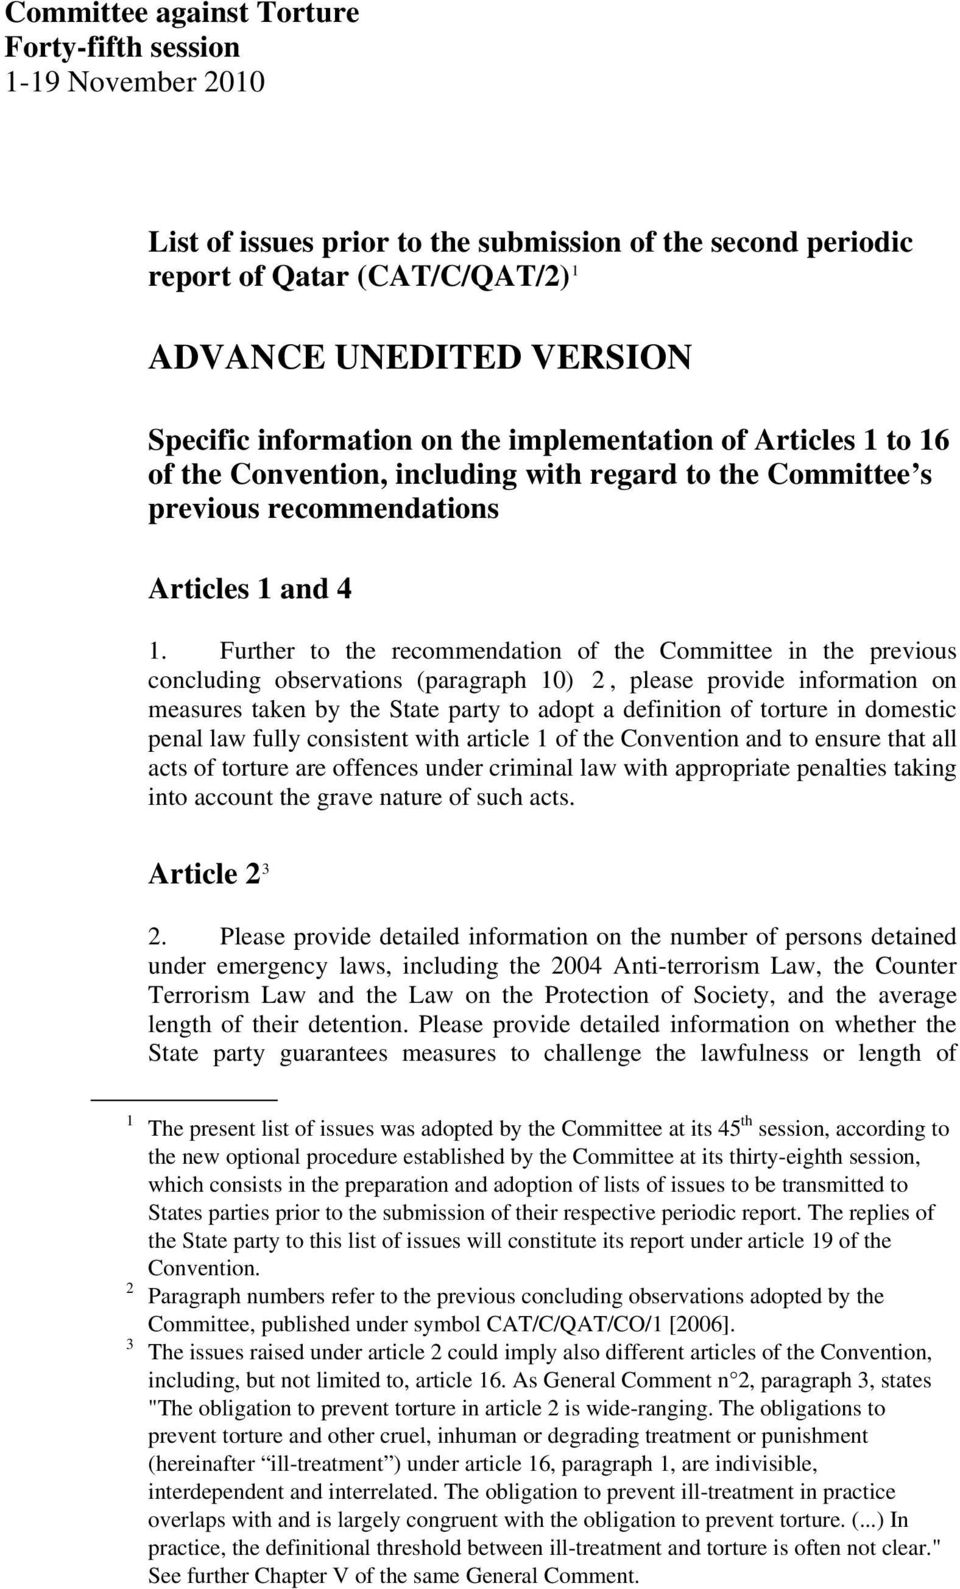 Further to the recommendation of the Committee in the previous concluding observations (paragraph 10) 2, please provide information on measures taken by the State party to adopt a definition of